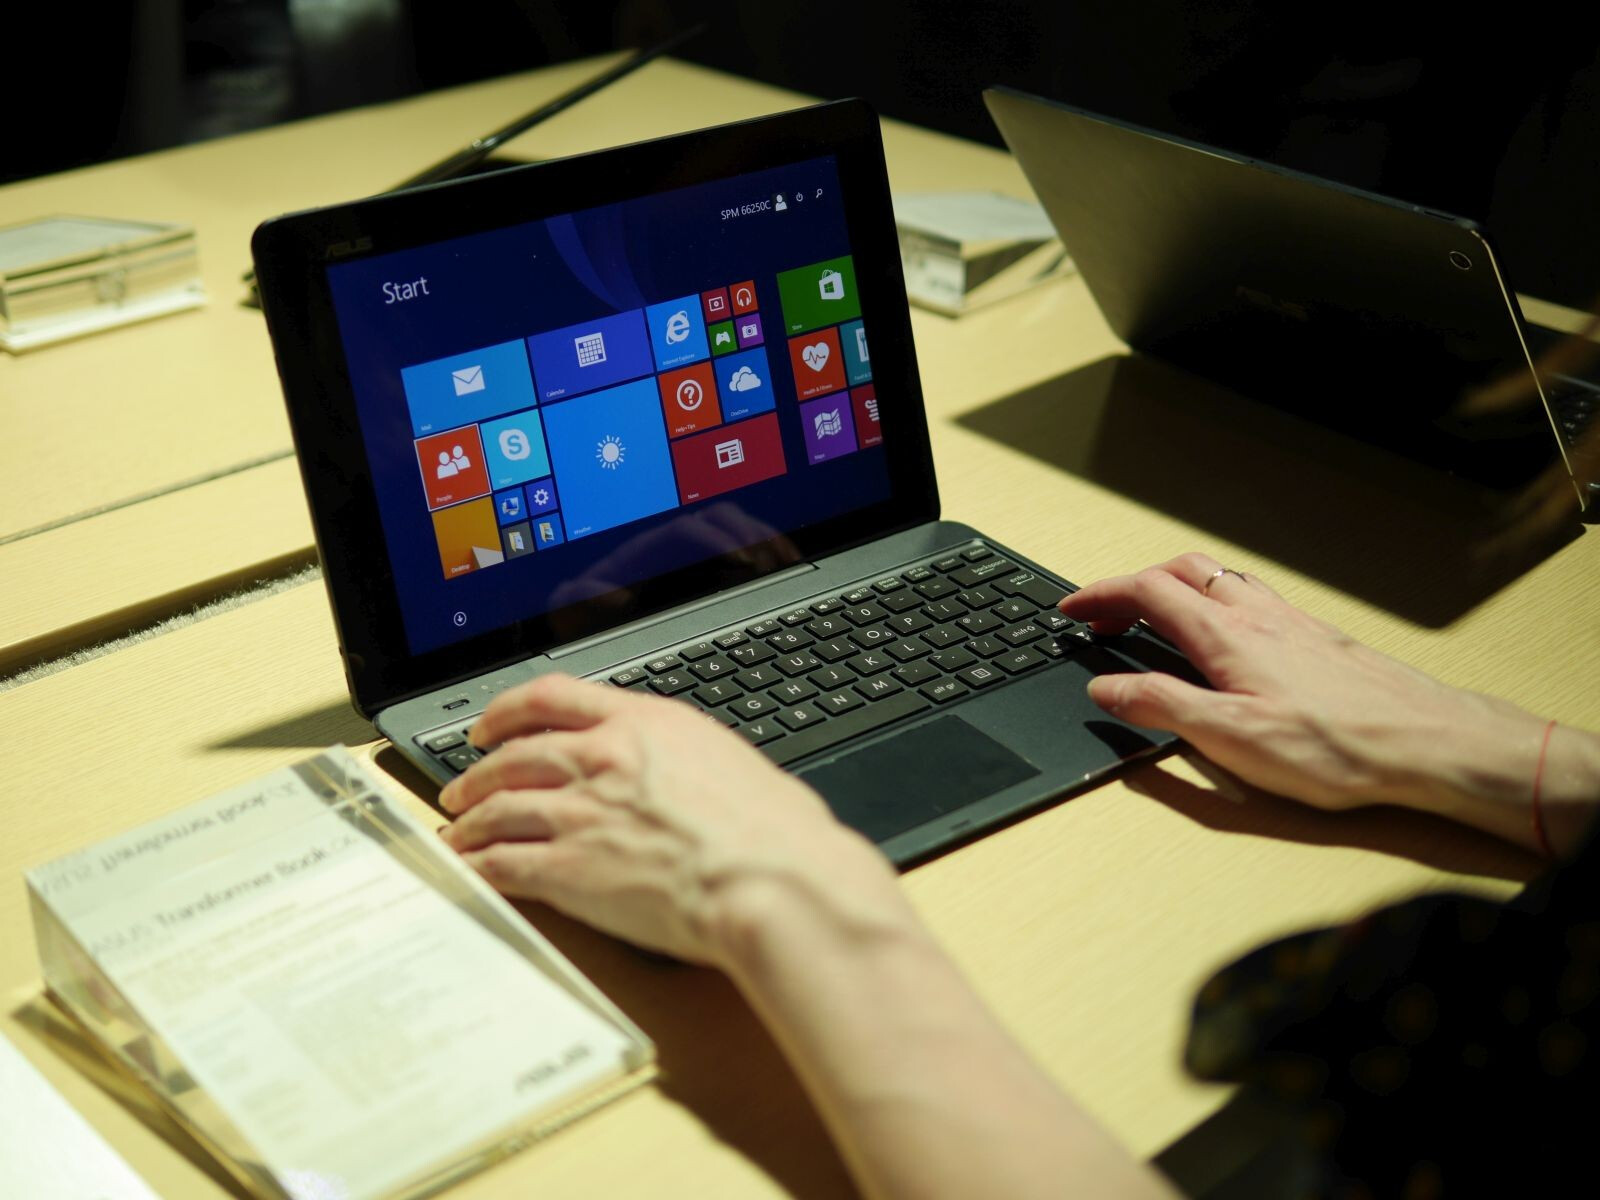 [Hands on] Asus Transformer Book T100 Chi - 60236